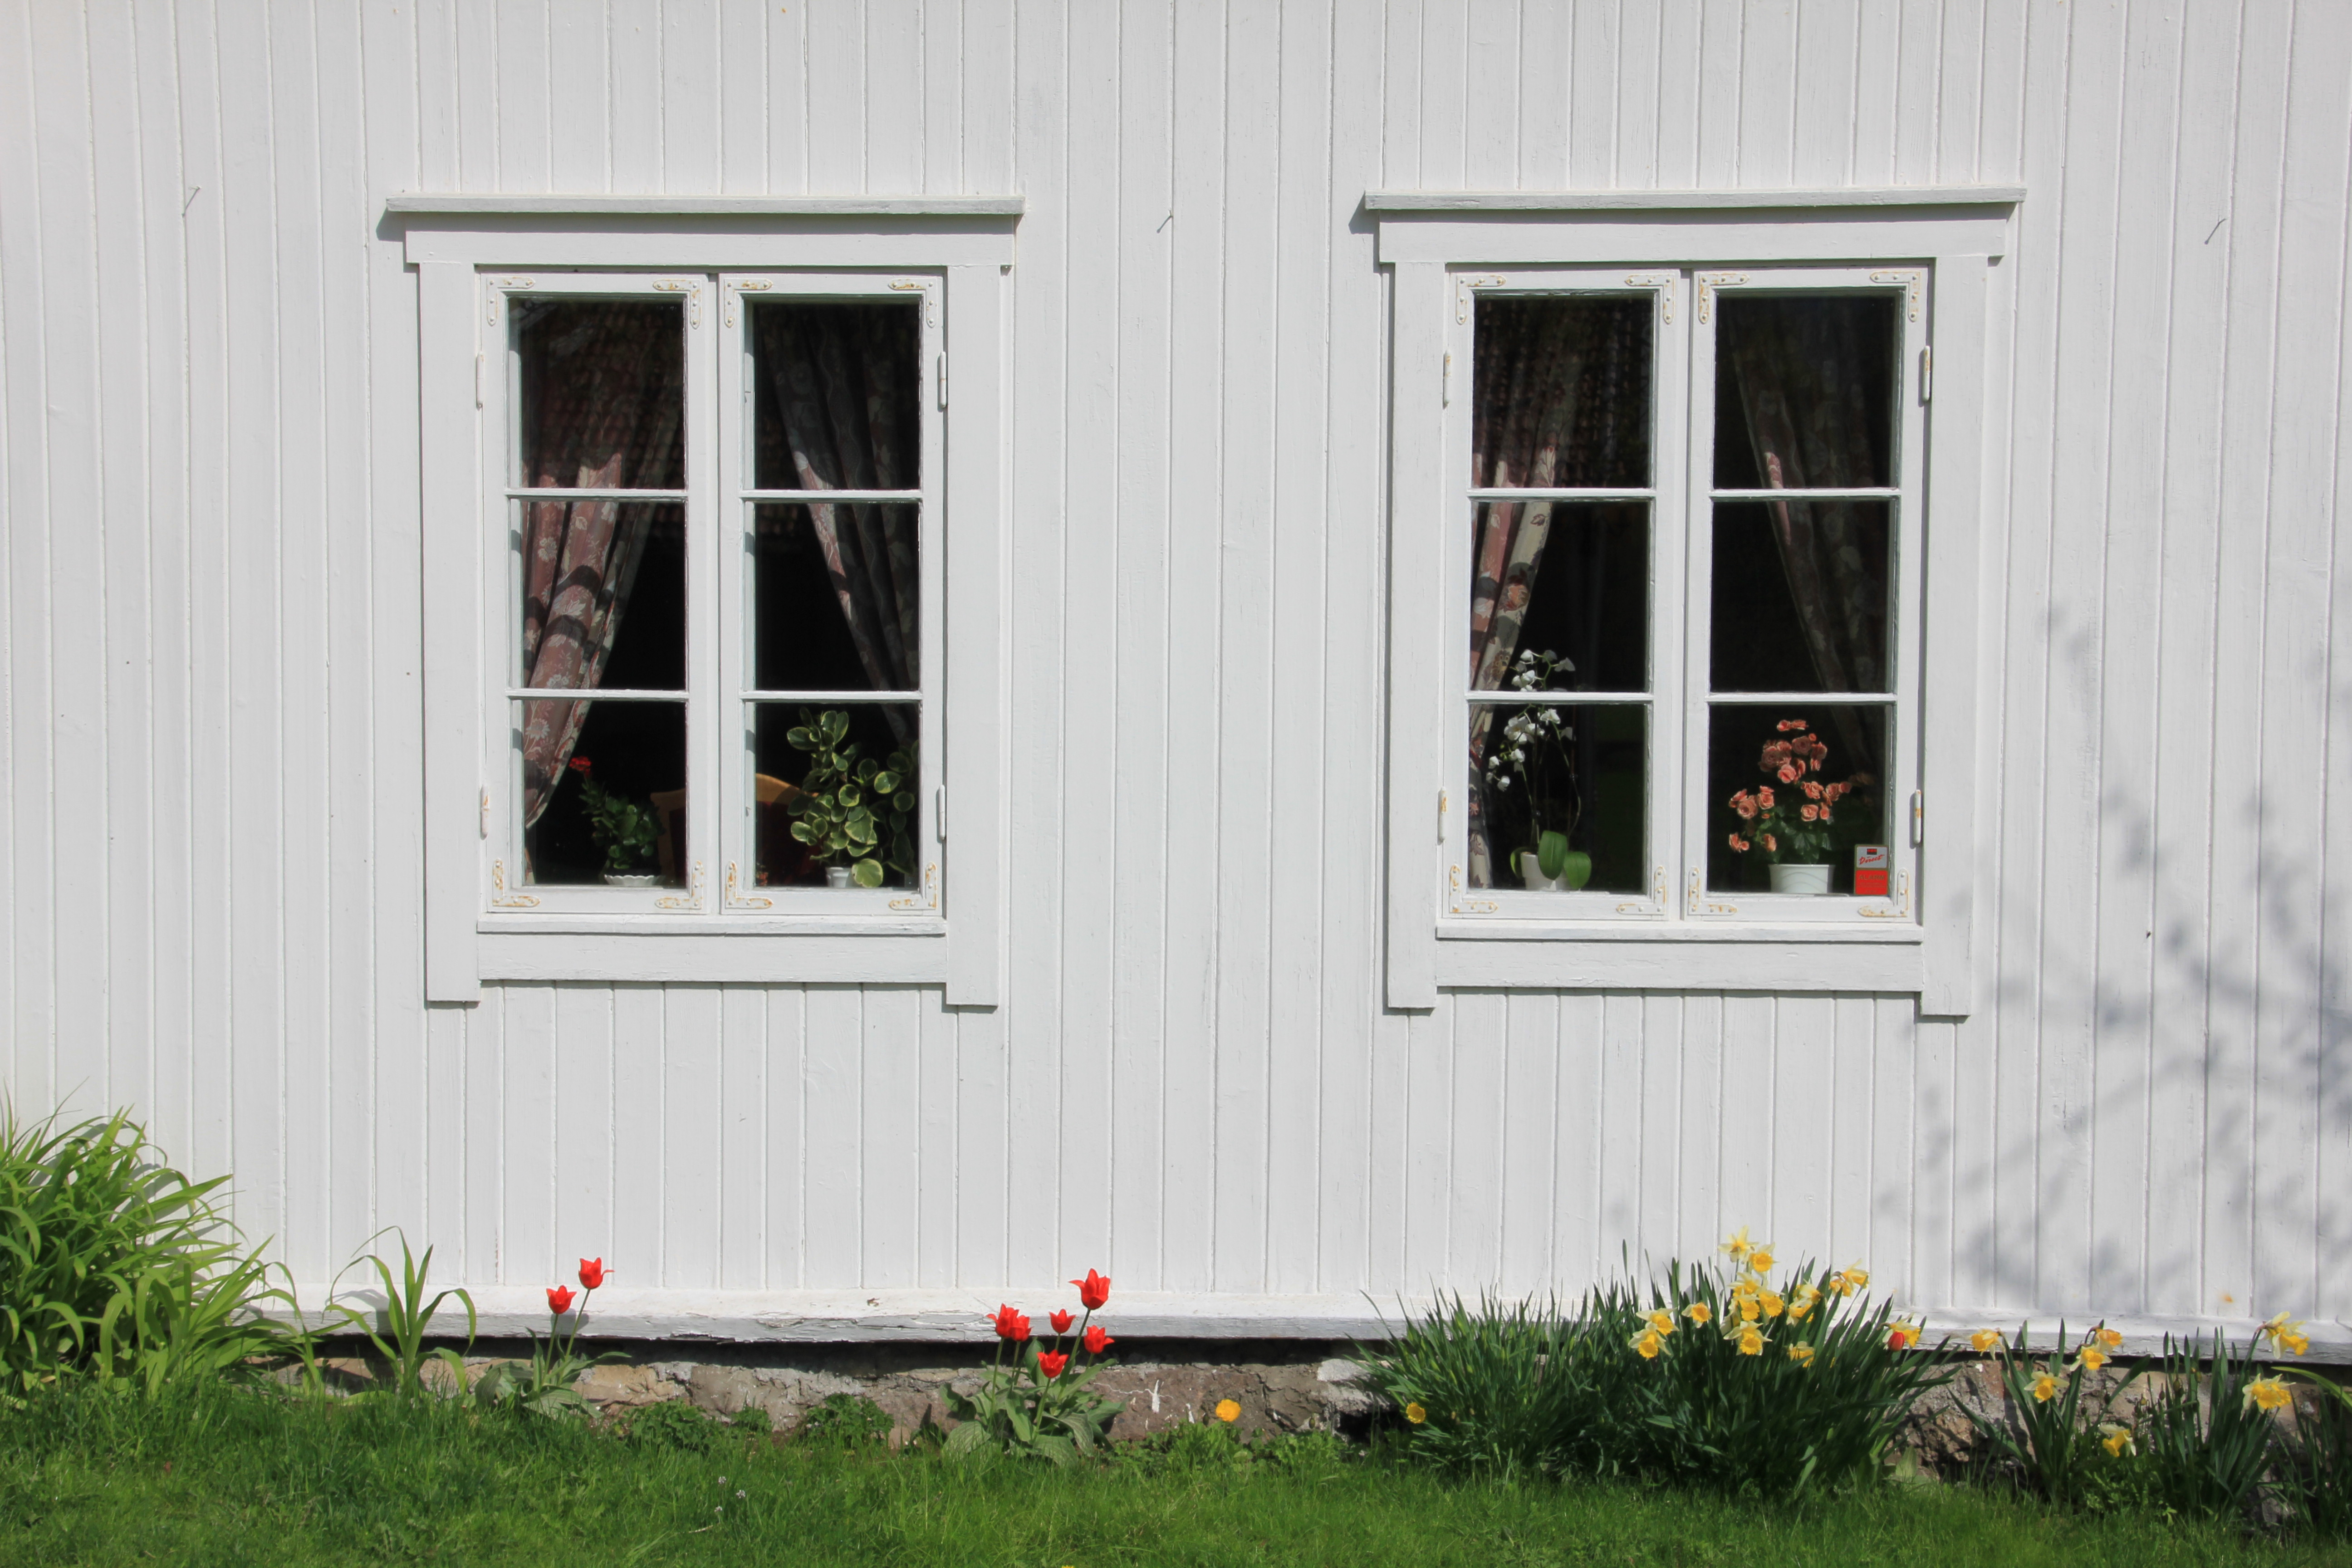 File:Old windows on the farmhouse at Grue, Hurdal, Norway